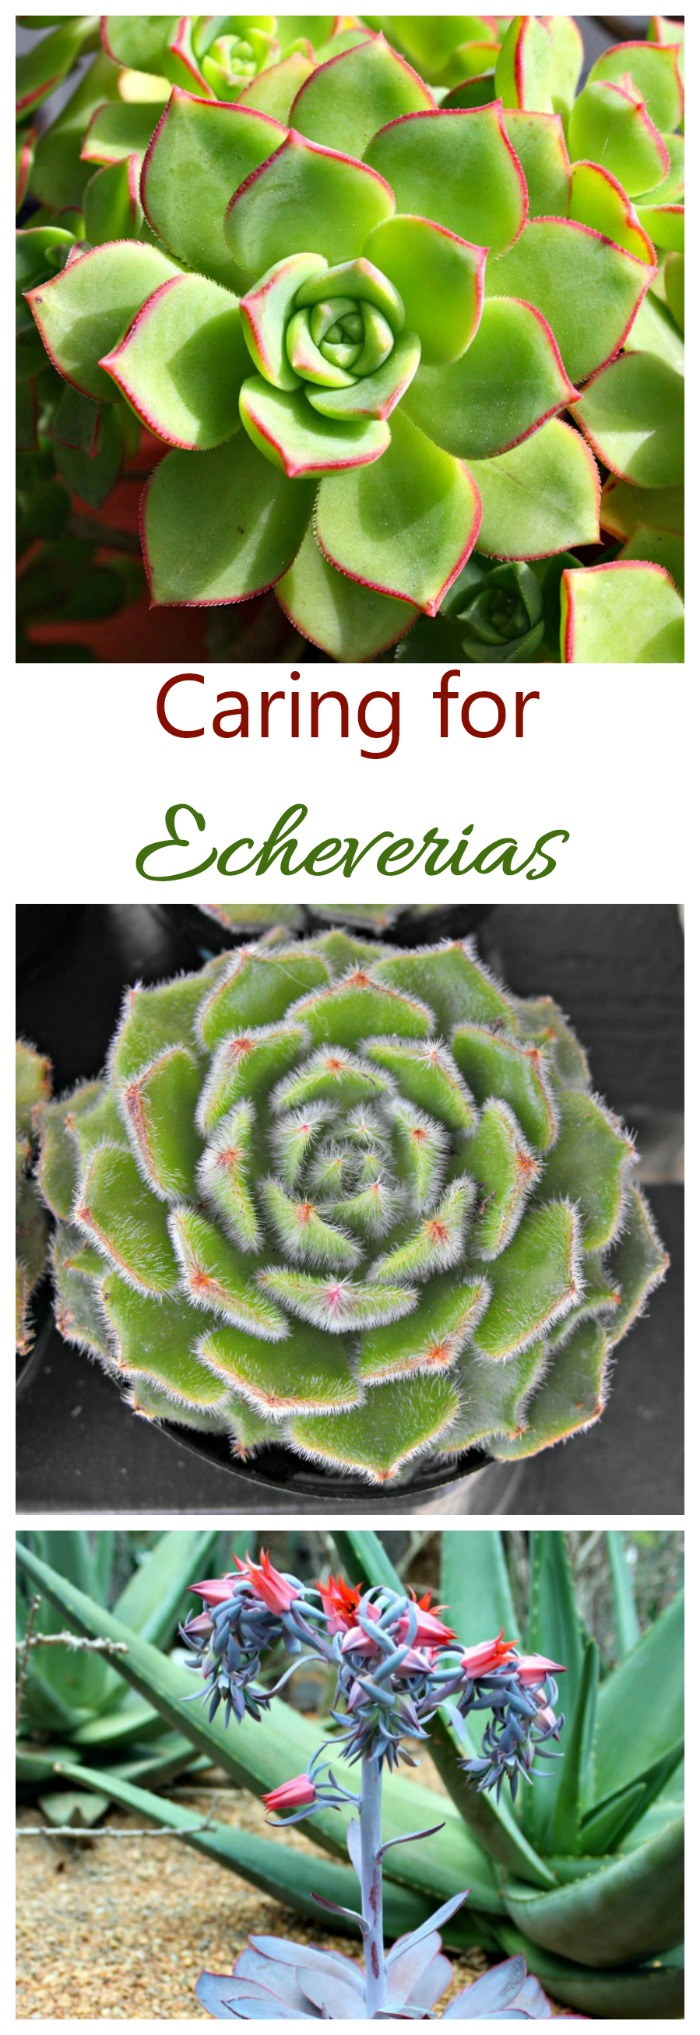 Caring for echeveria is easy. Watch the sunlight and water a bit and let it grow. click through to see my growing tips